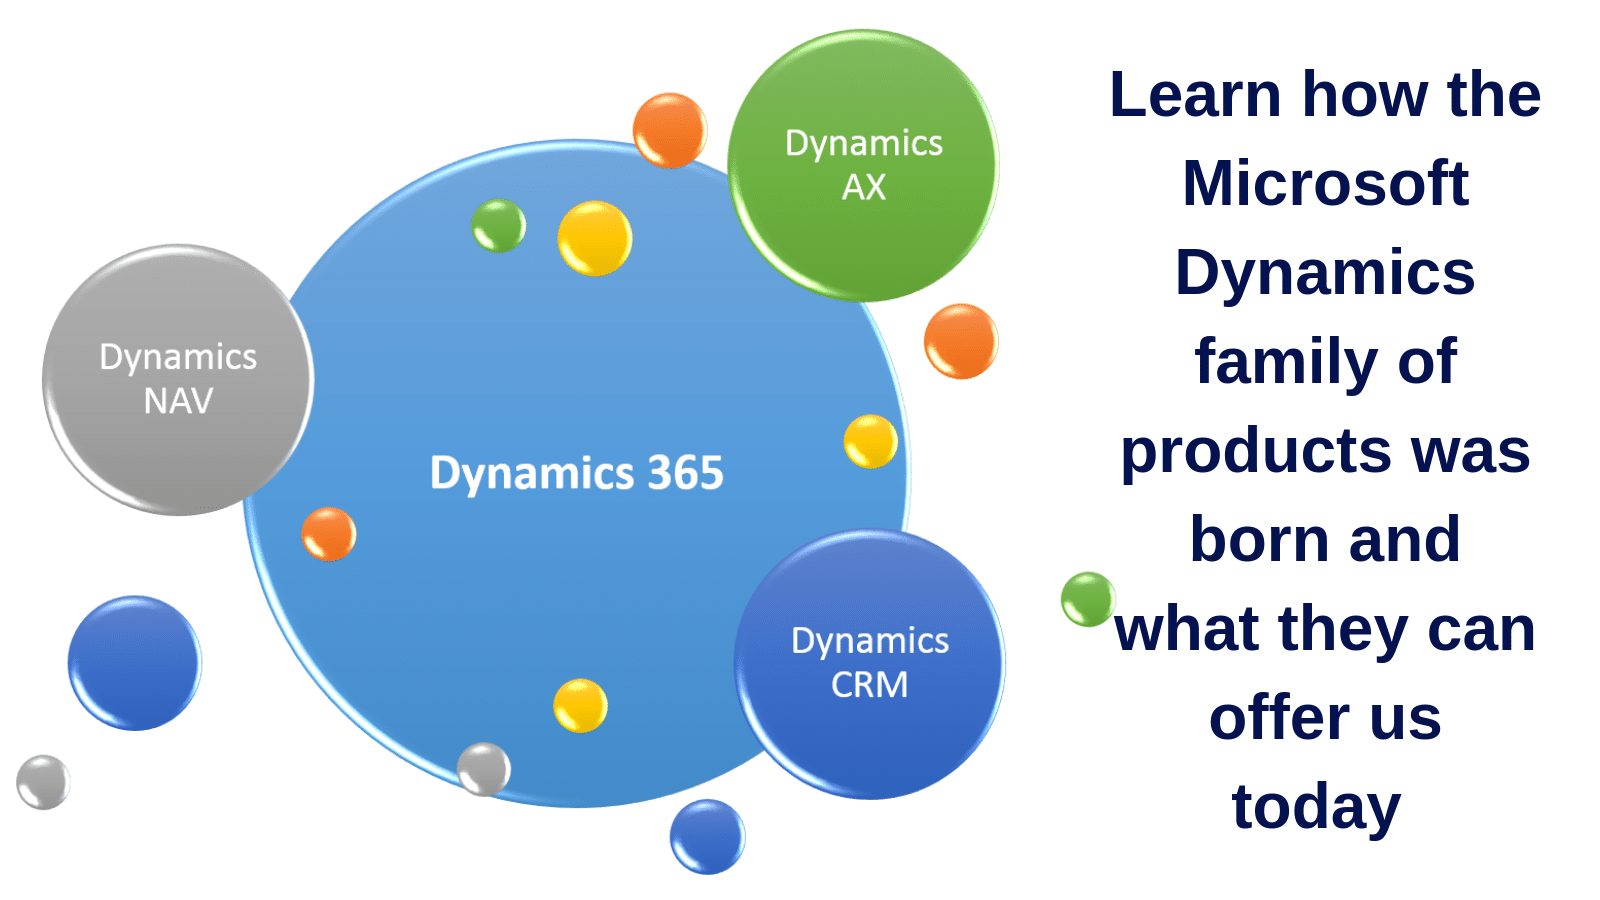 Learn how the Microsoft Dynamics family of products was born and what they can offer us today.